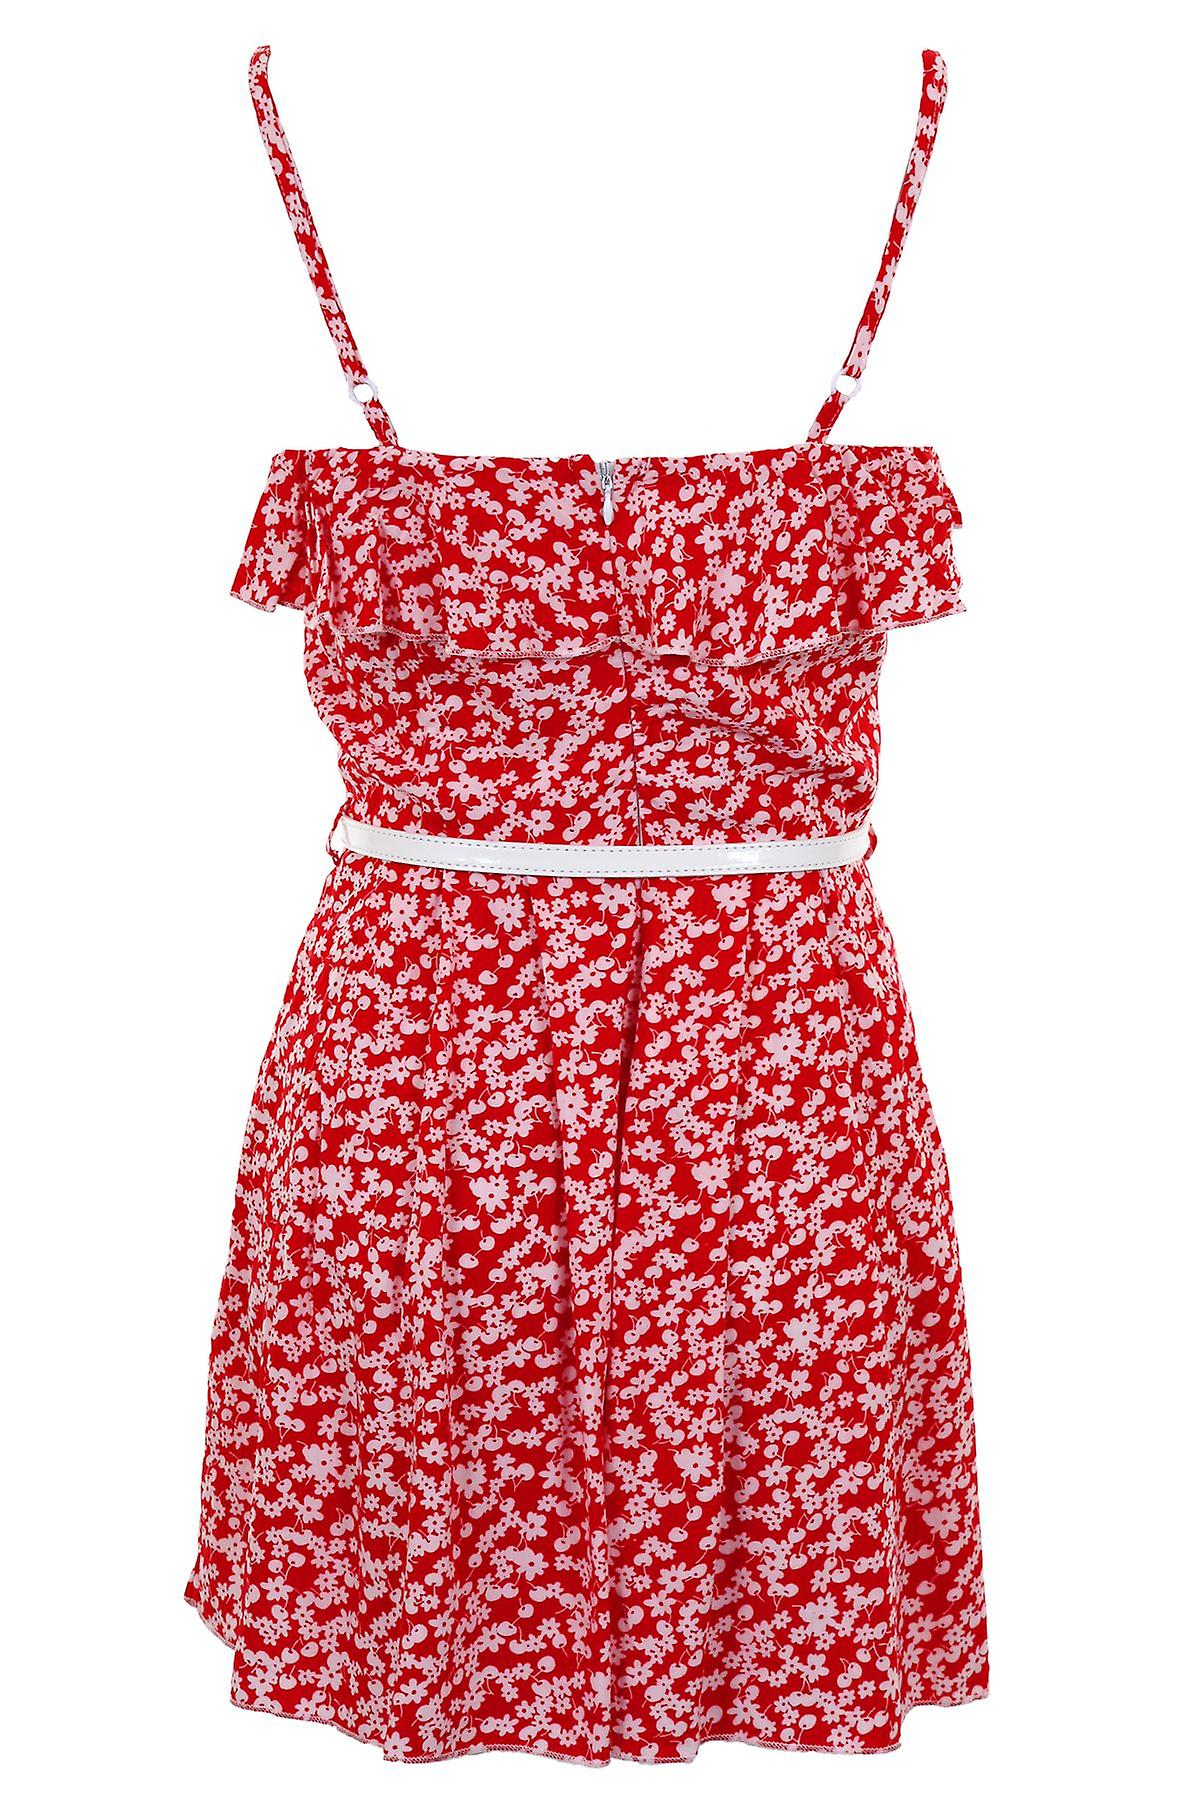 Ladies Sleeveless Frill Floral Belted Cami Women's Summer Shorts Party Playsuit